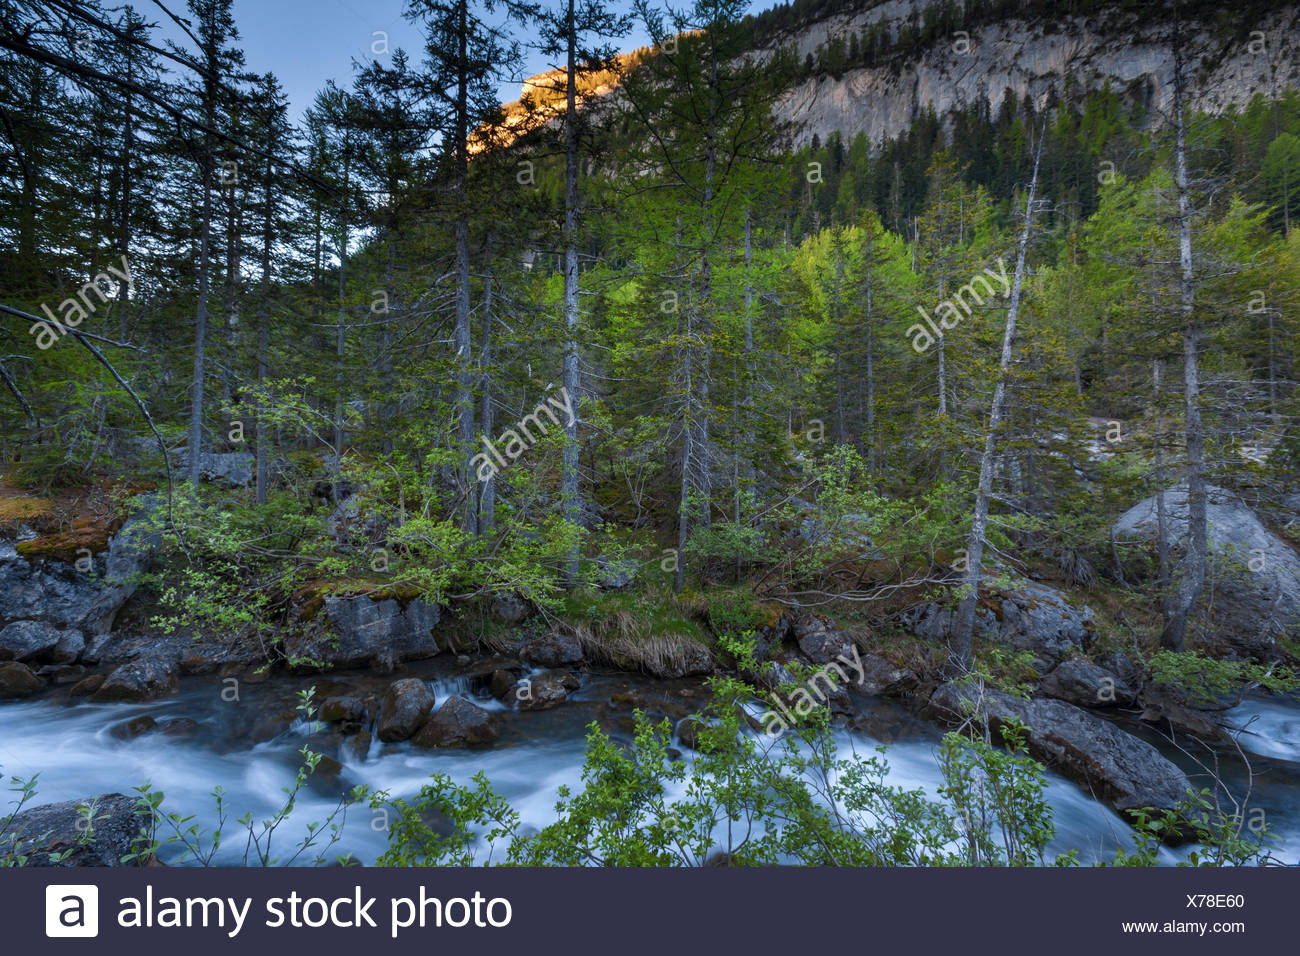 Primeval forest, forest, Derborence, Switzerland, Europe, canton, Valais, brook - Stock Image